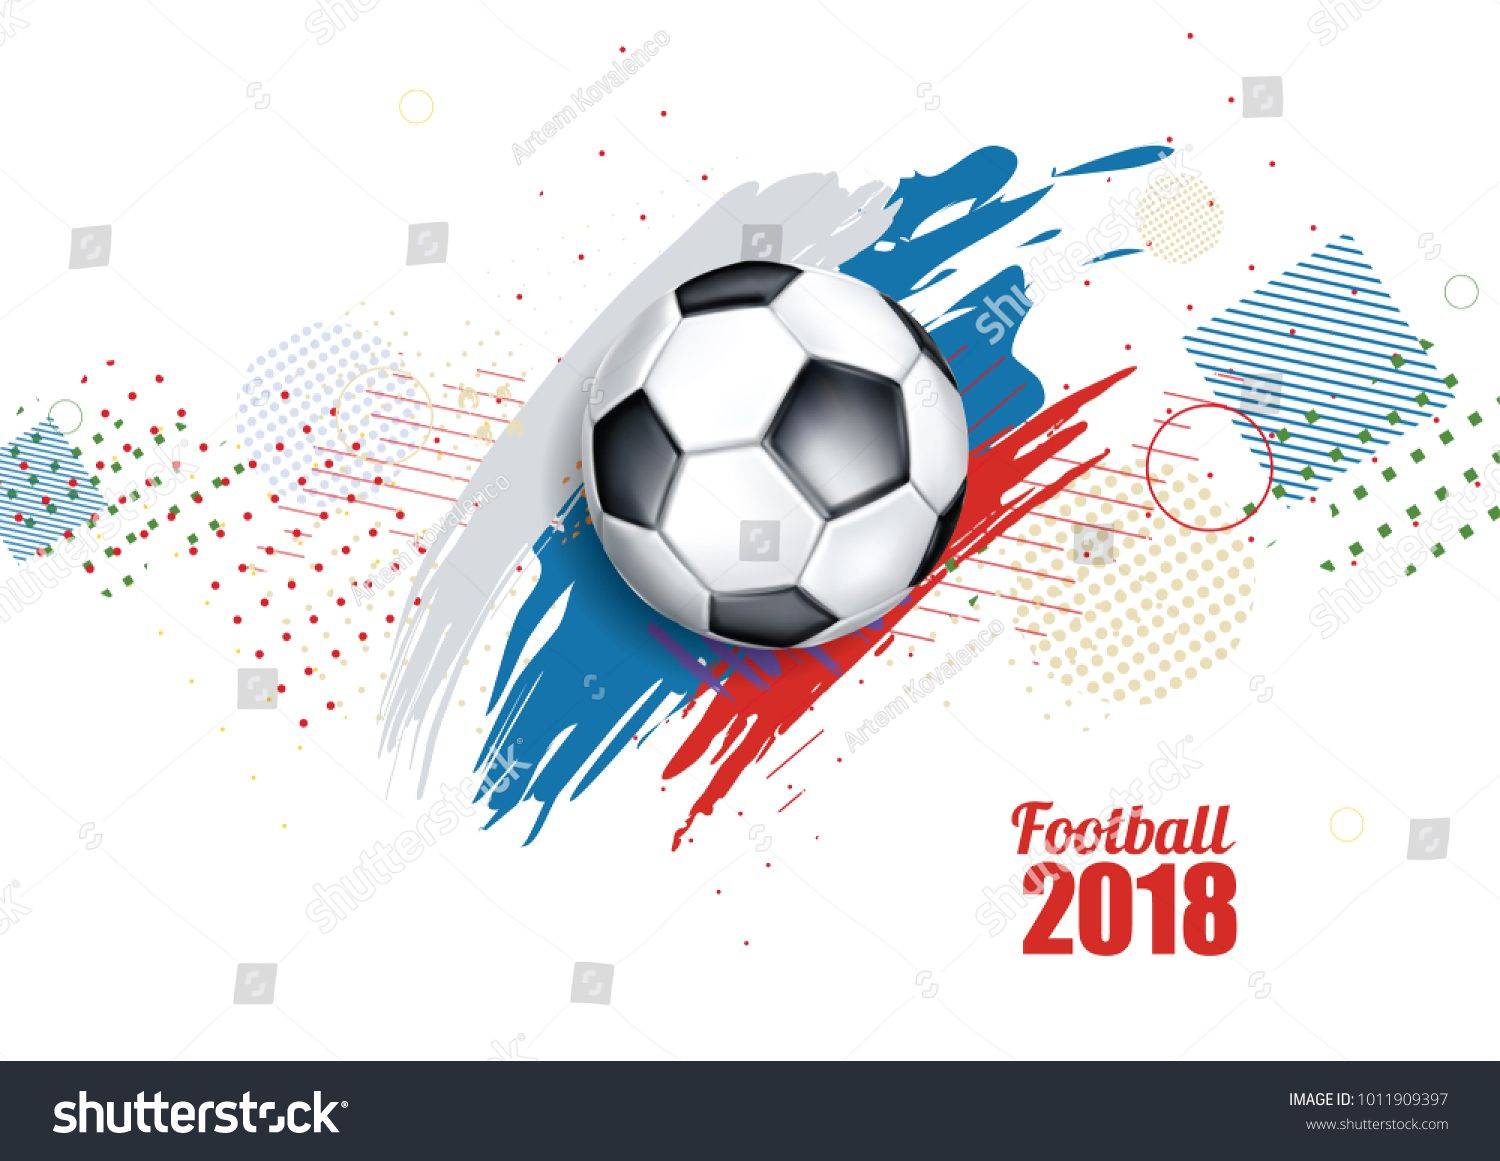 Vector Illustration Of A Football Cup 2018 Design Of A Stylish Background For The Soccer Championship Vector Realistic 3d Ba Soccer Football Cups Card Design